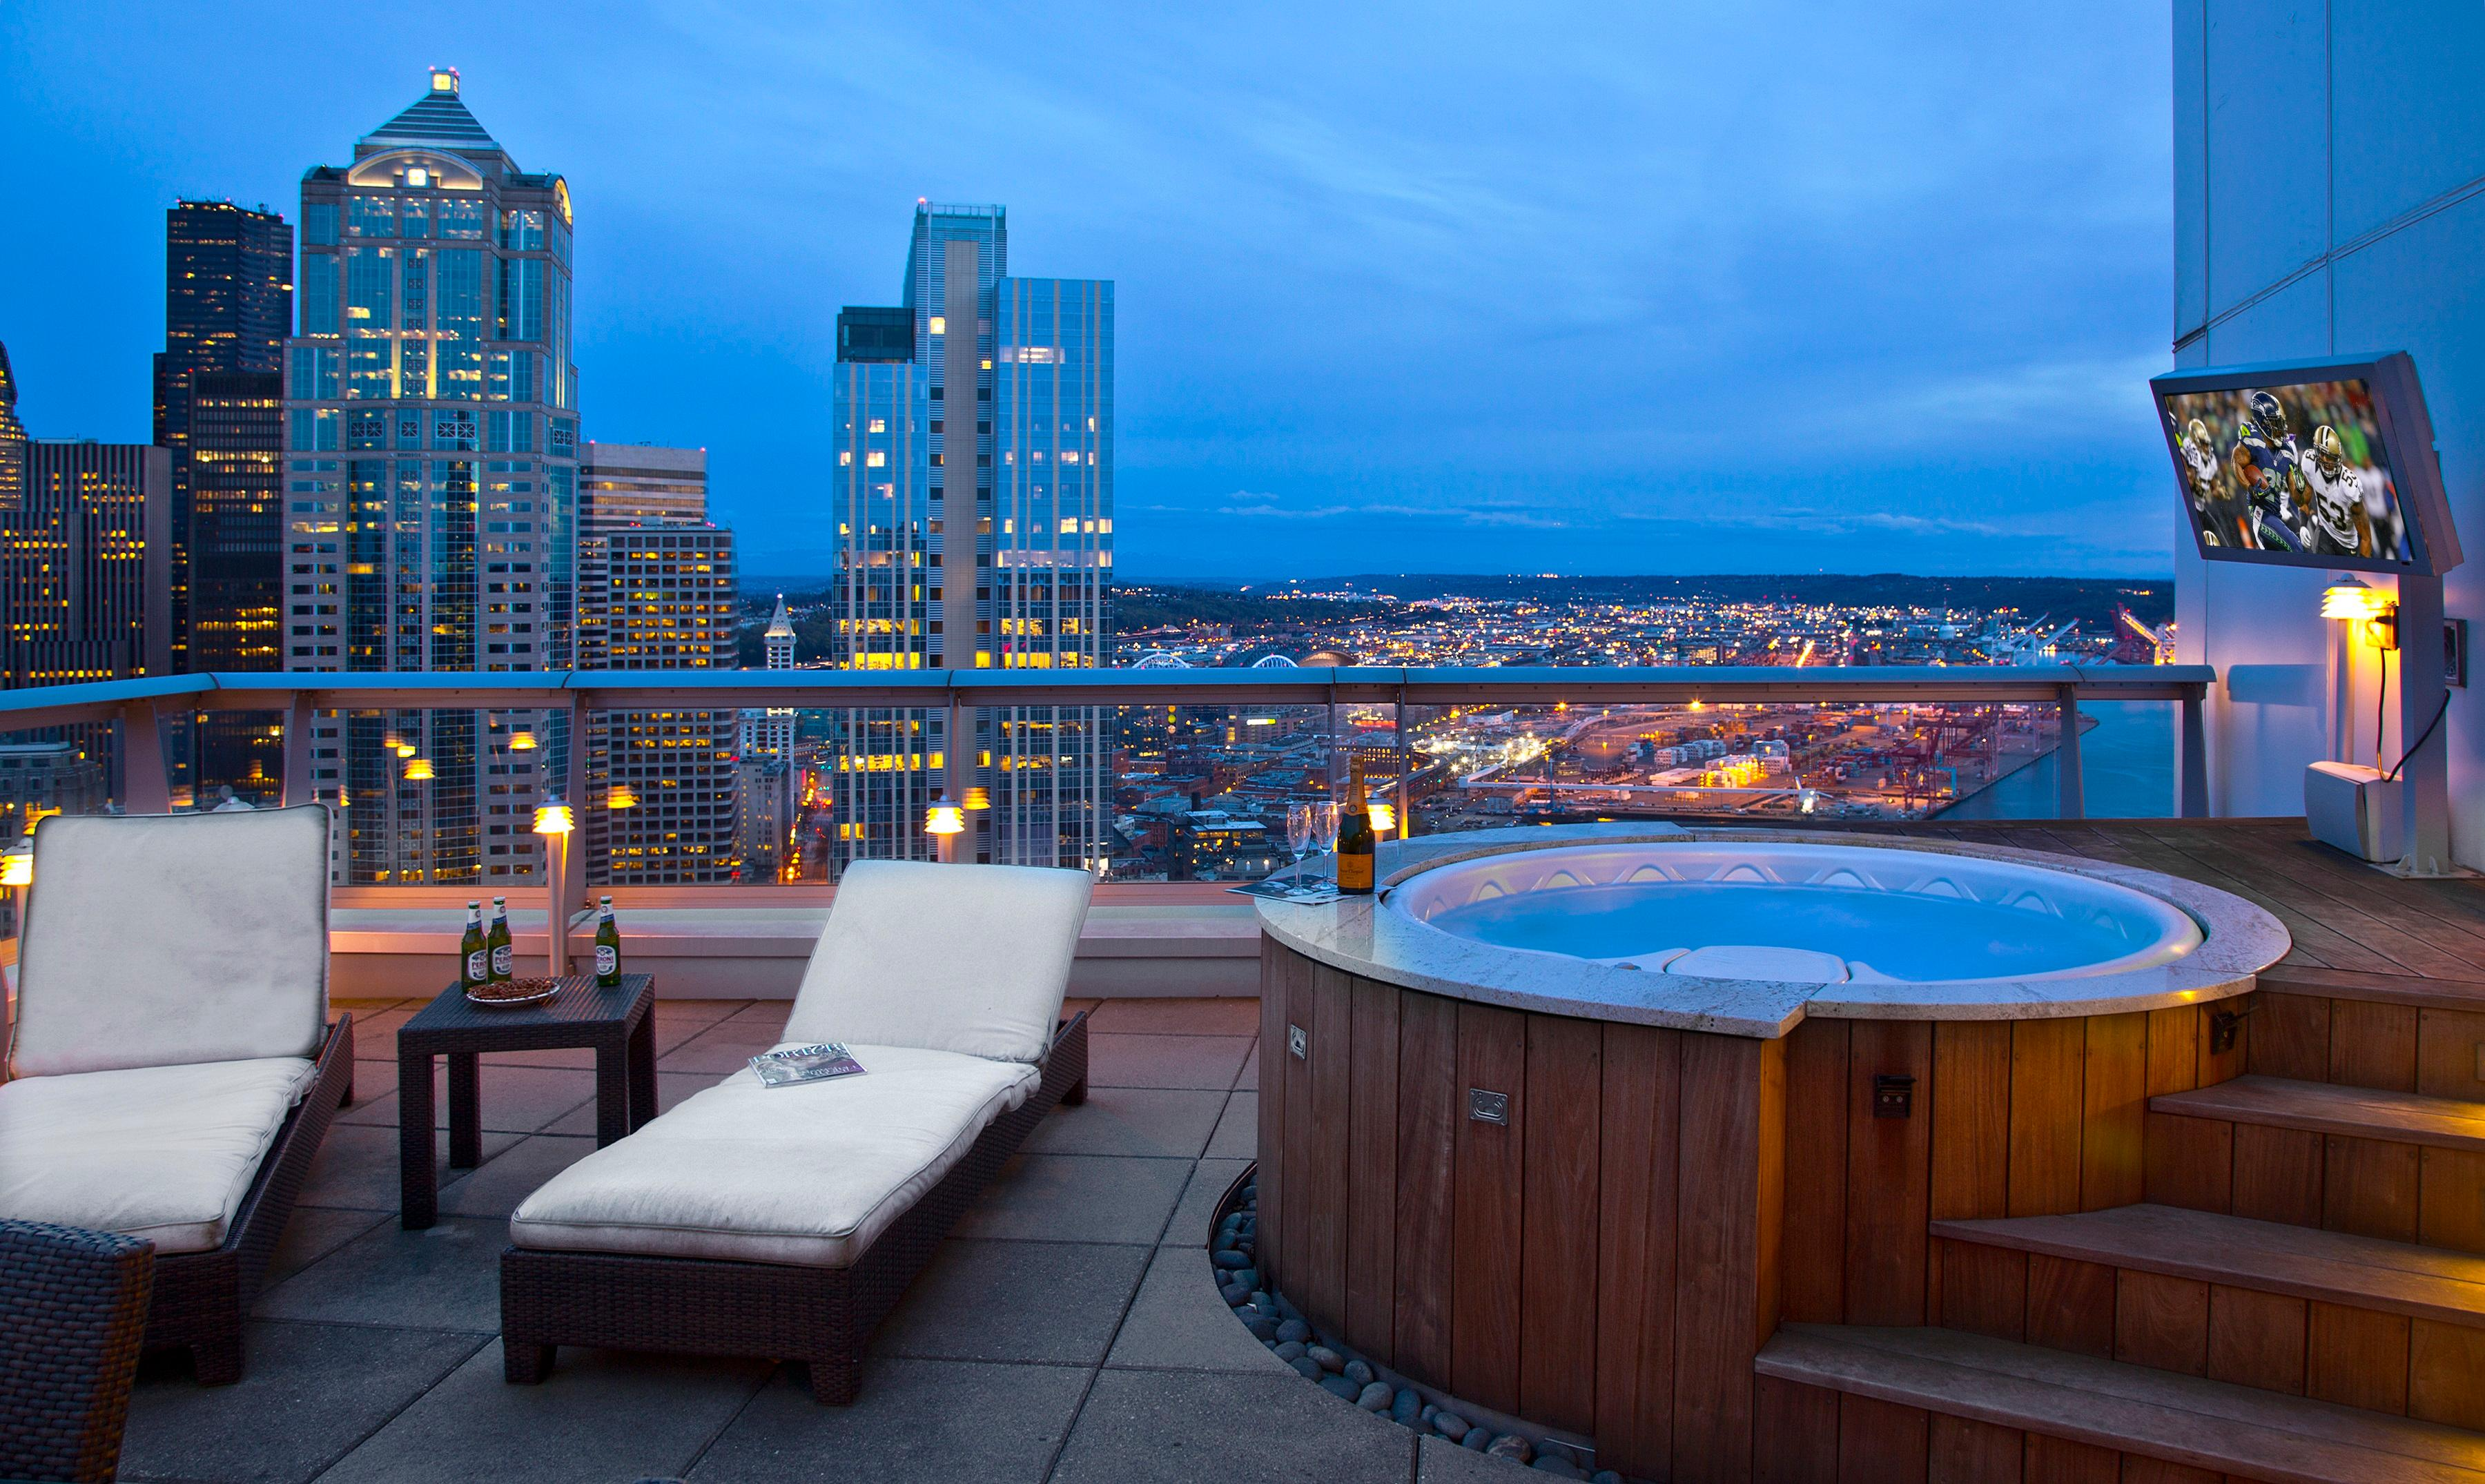 This beautiful Belltown penthouse is 2,453 square feet of PURE luxury. The home has 2 bedrooms and 1.75 bathrooms, but the biggest pull (in my opinion), is the hot tub on the private patio overlooking the city. The condo is selling by Scott Richards of Windermere for $4,500,000, more info at SeattlePointOfView.com. (Image: Michael Walmsley)